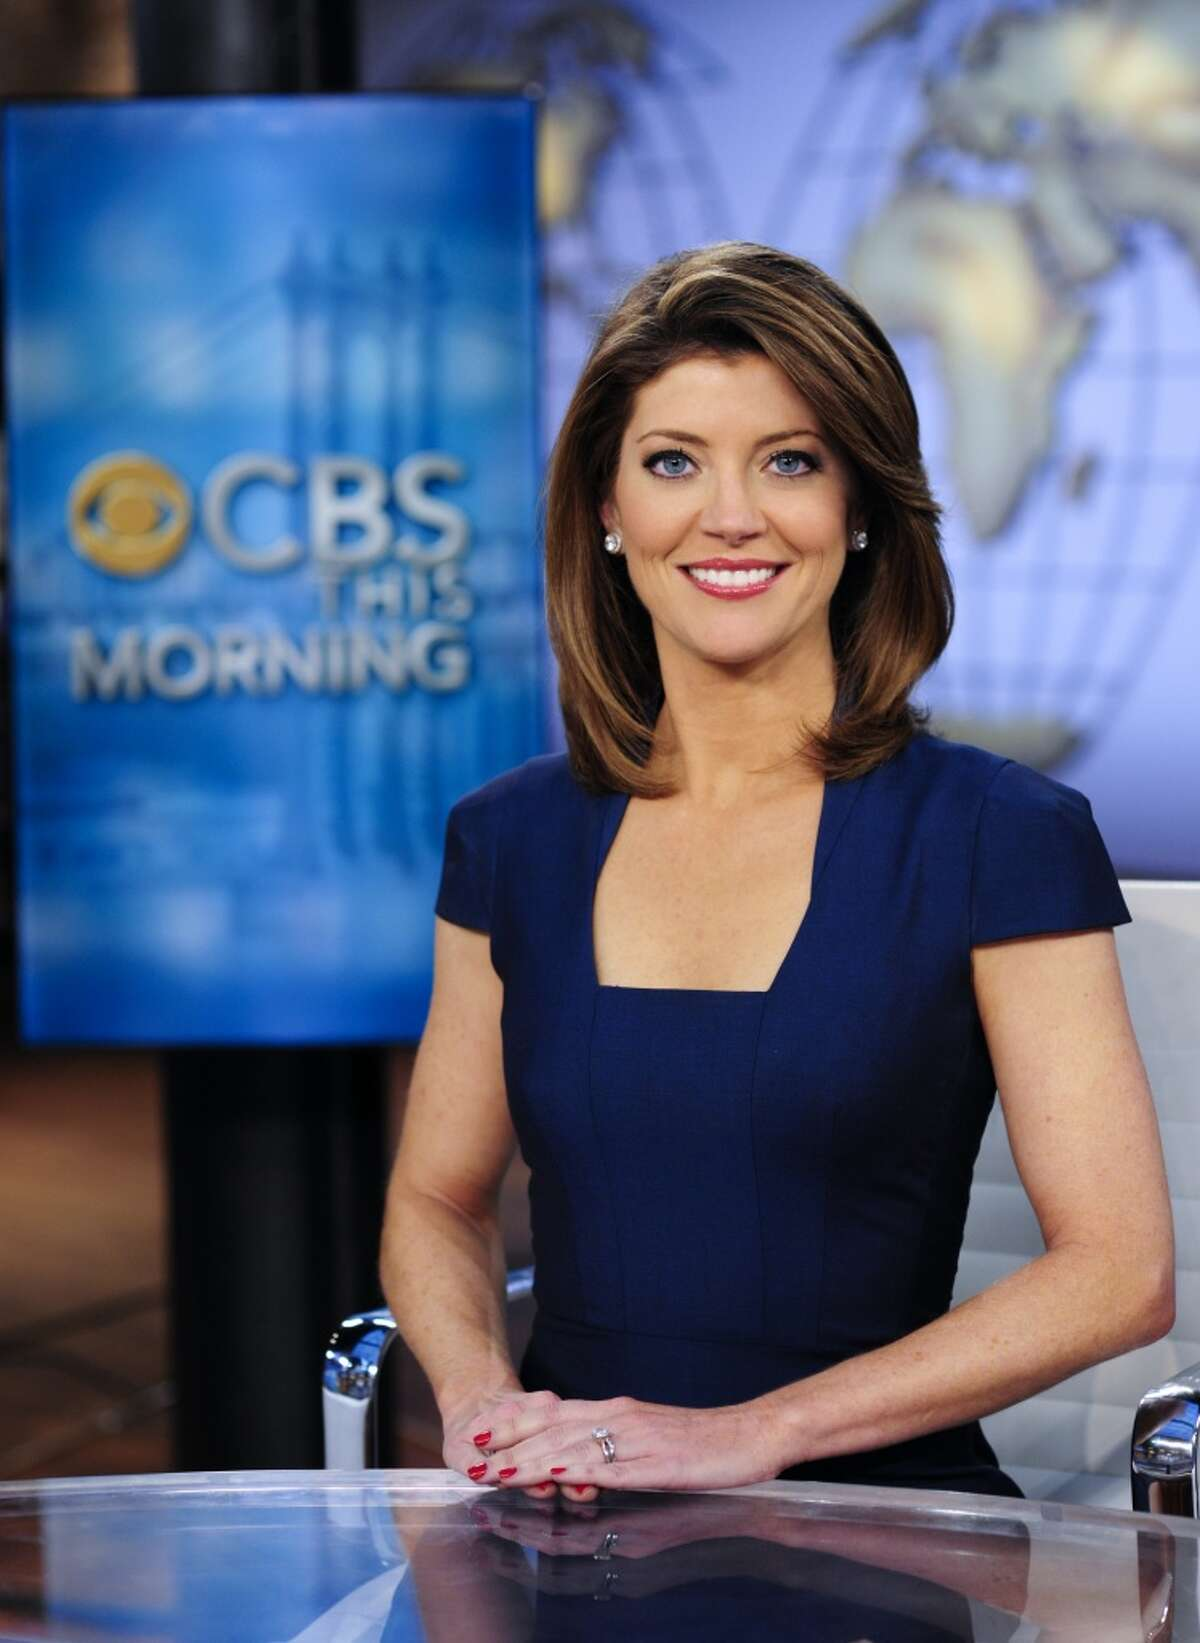 Cbs News Names New Evening Anchor Revamps Morning Show